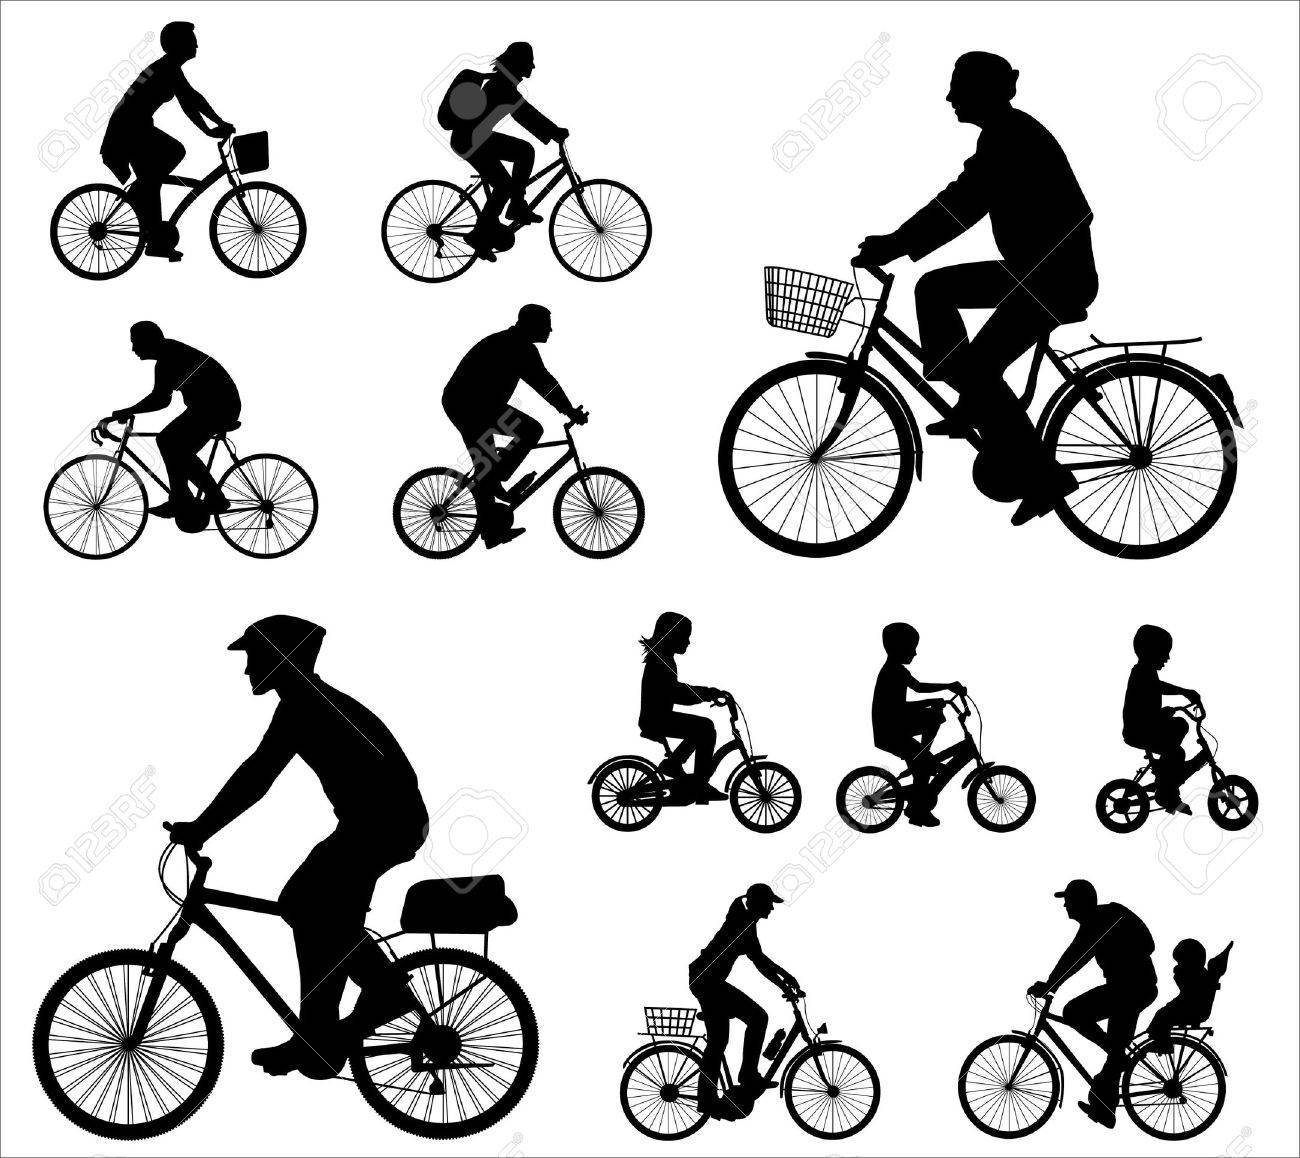 bicyclists silhouettes collection - 12247798